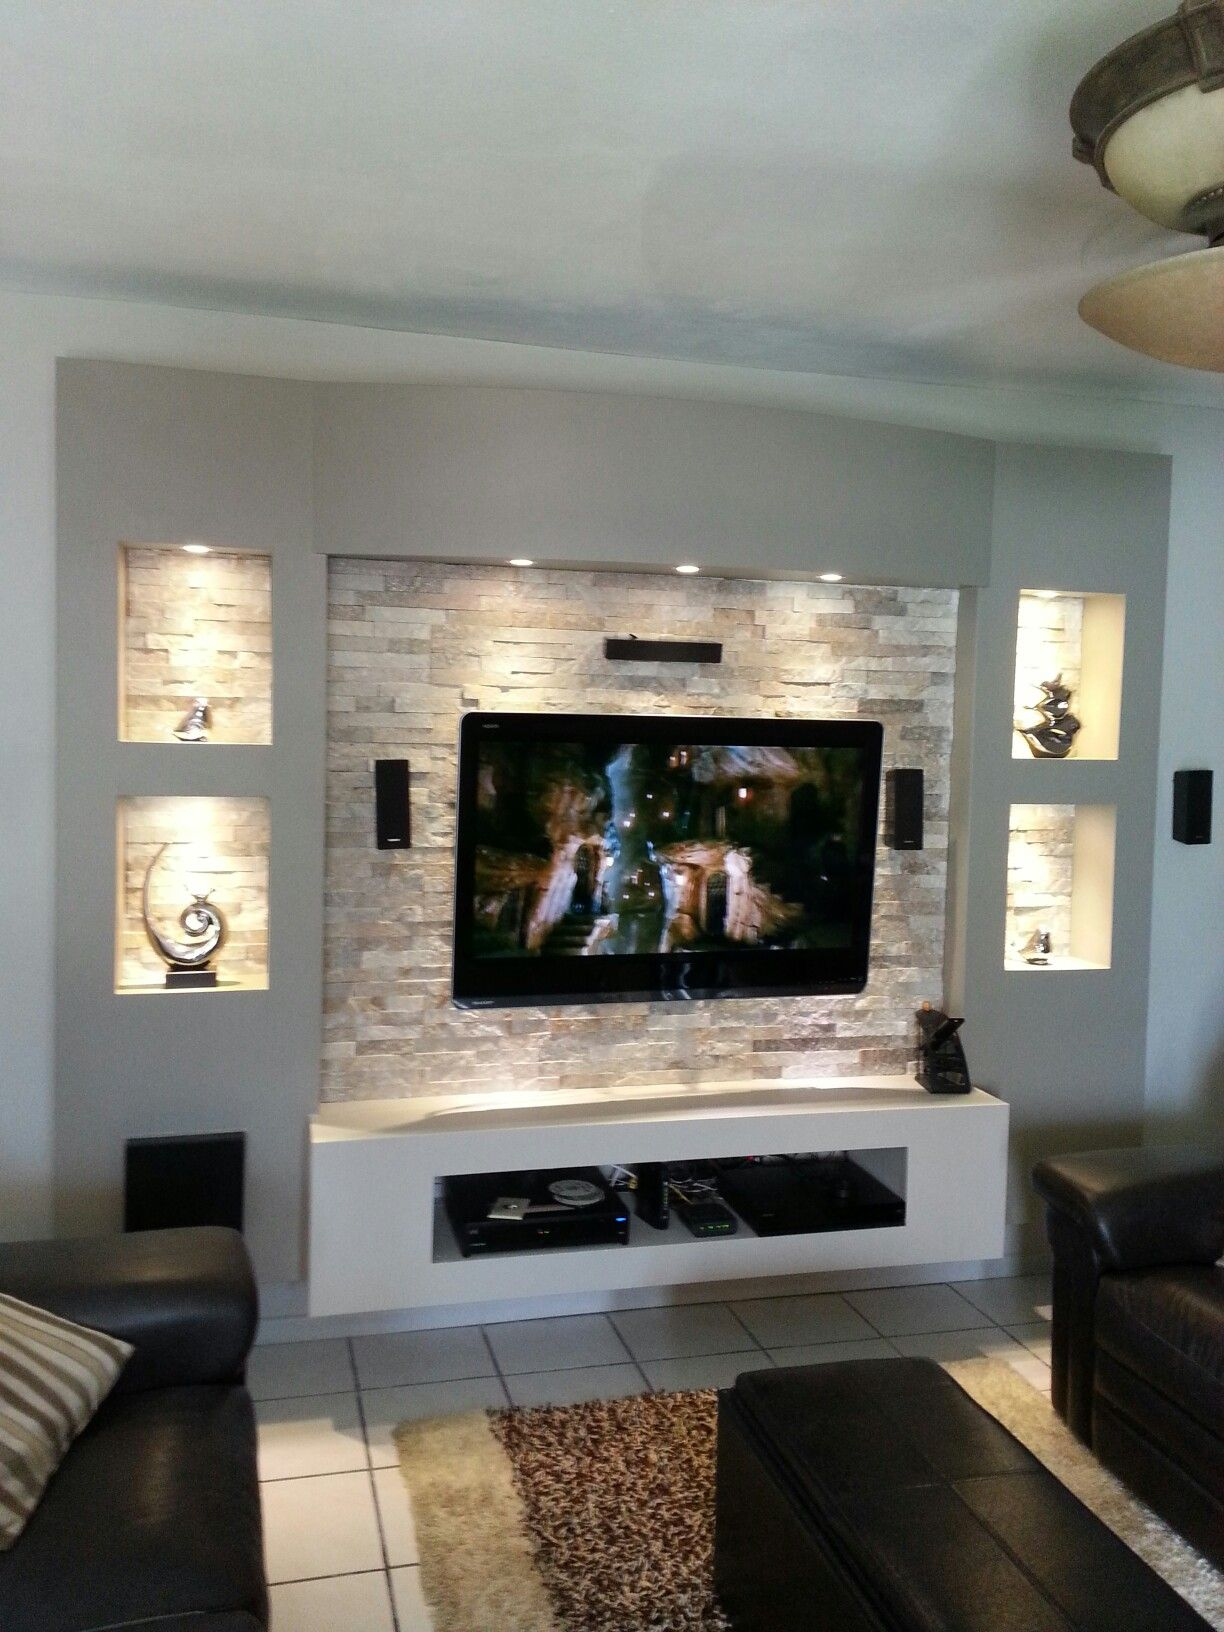 Innovacin TV Unit My own projects Pinterest Tv units TVs and